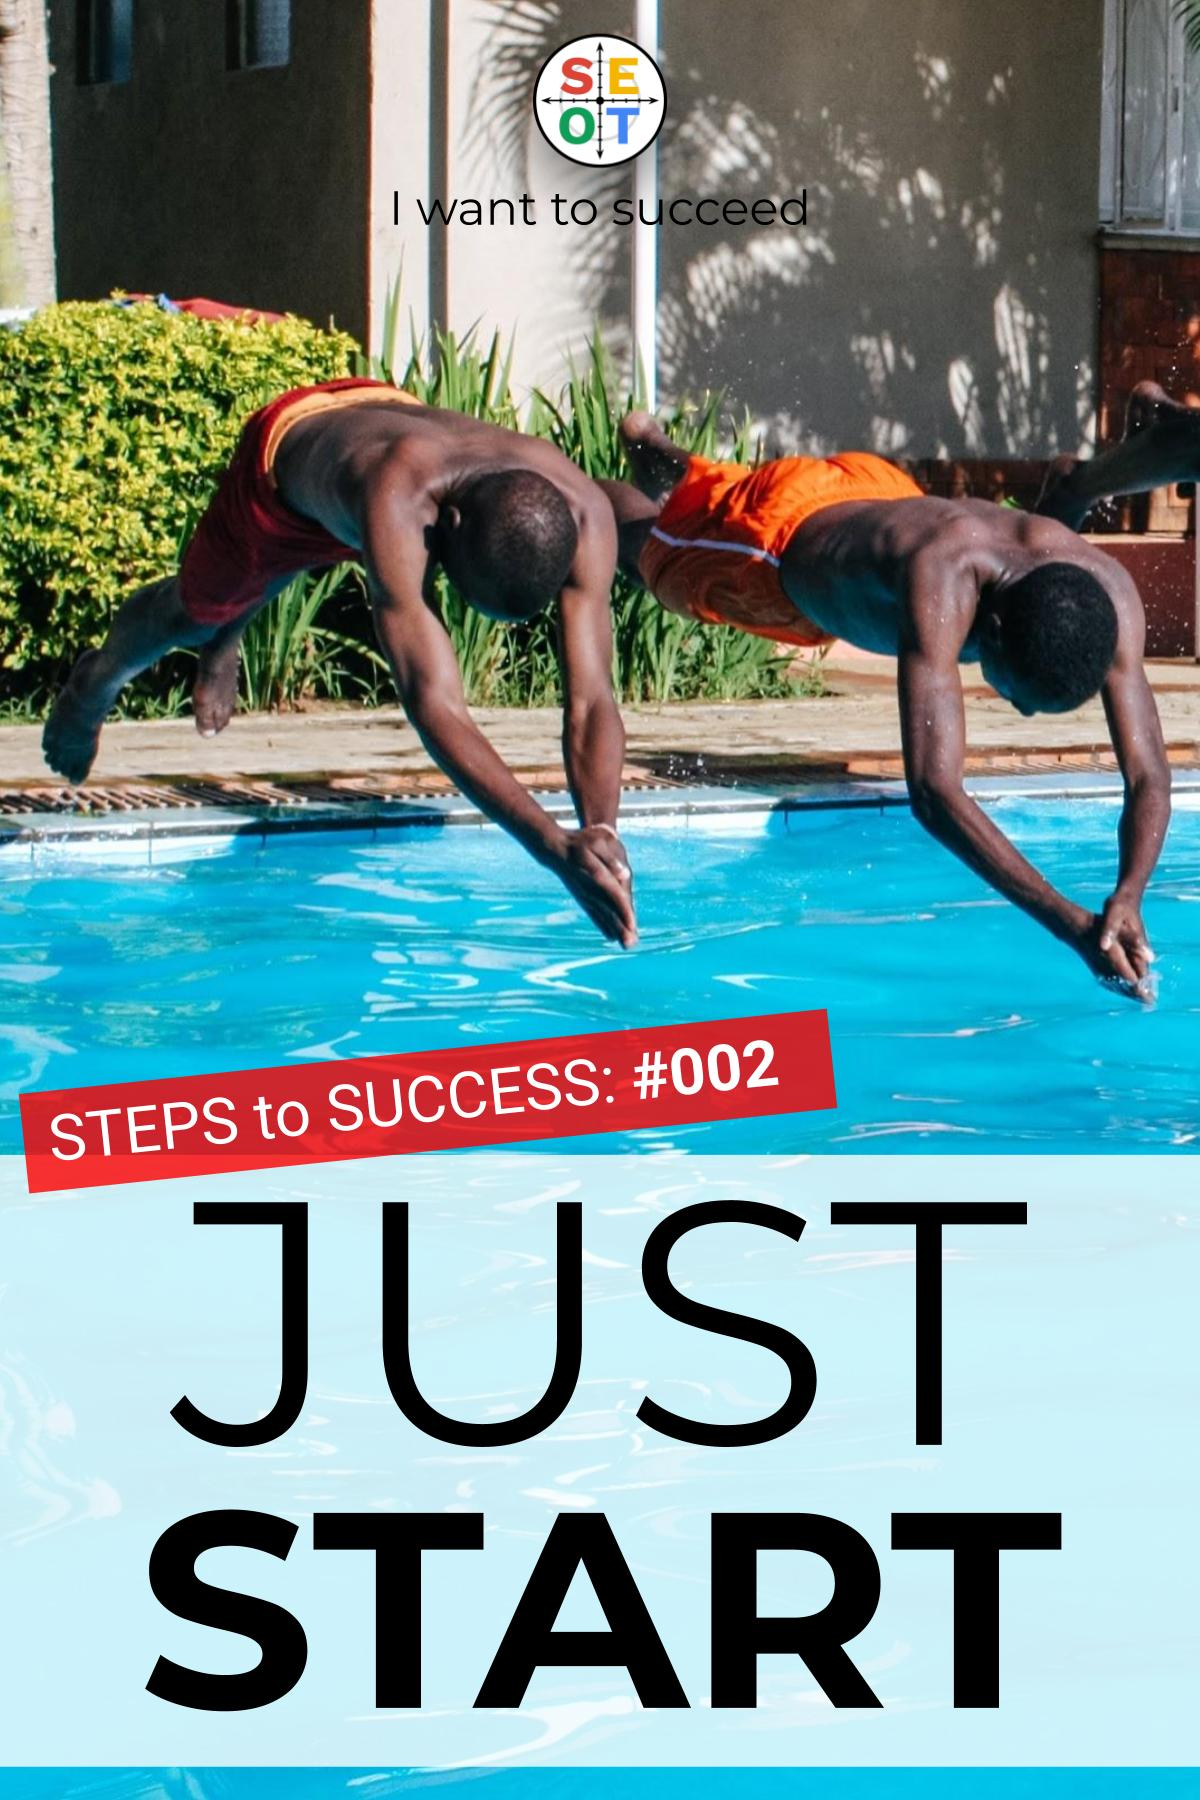 STEPS to SUCCESS #002: Just Start - image of people jumping into pool